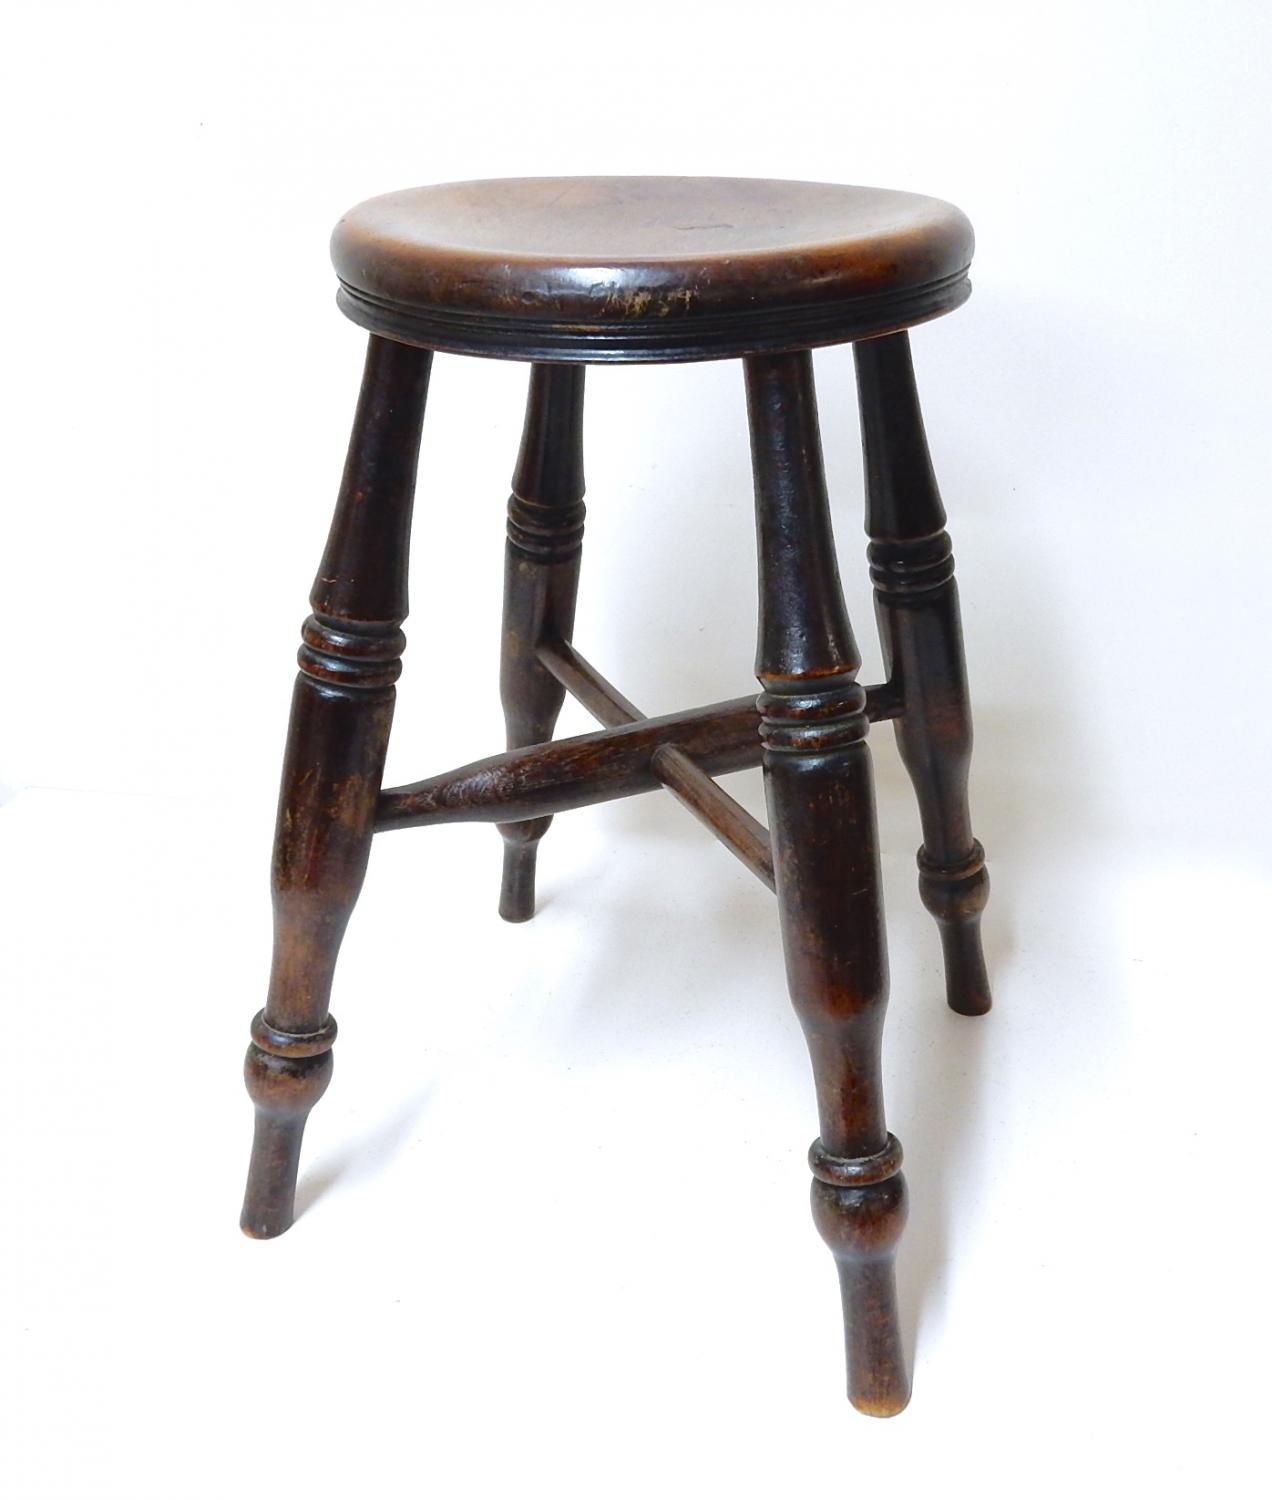 Low Windsor stool with cross stretcher Elm and Walnut Original, untouched condition